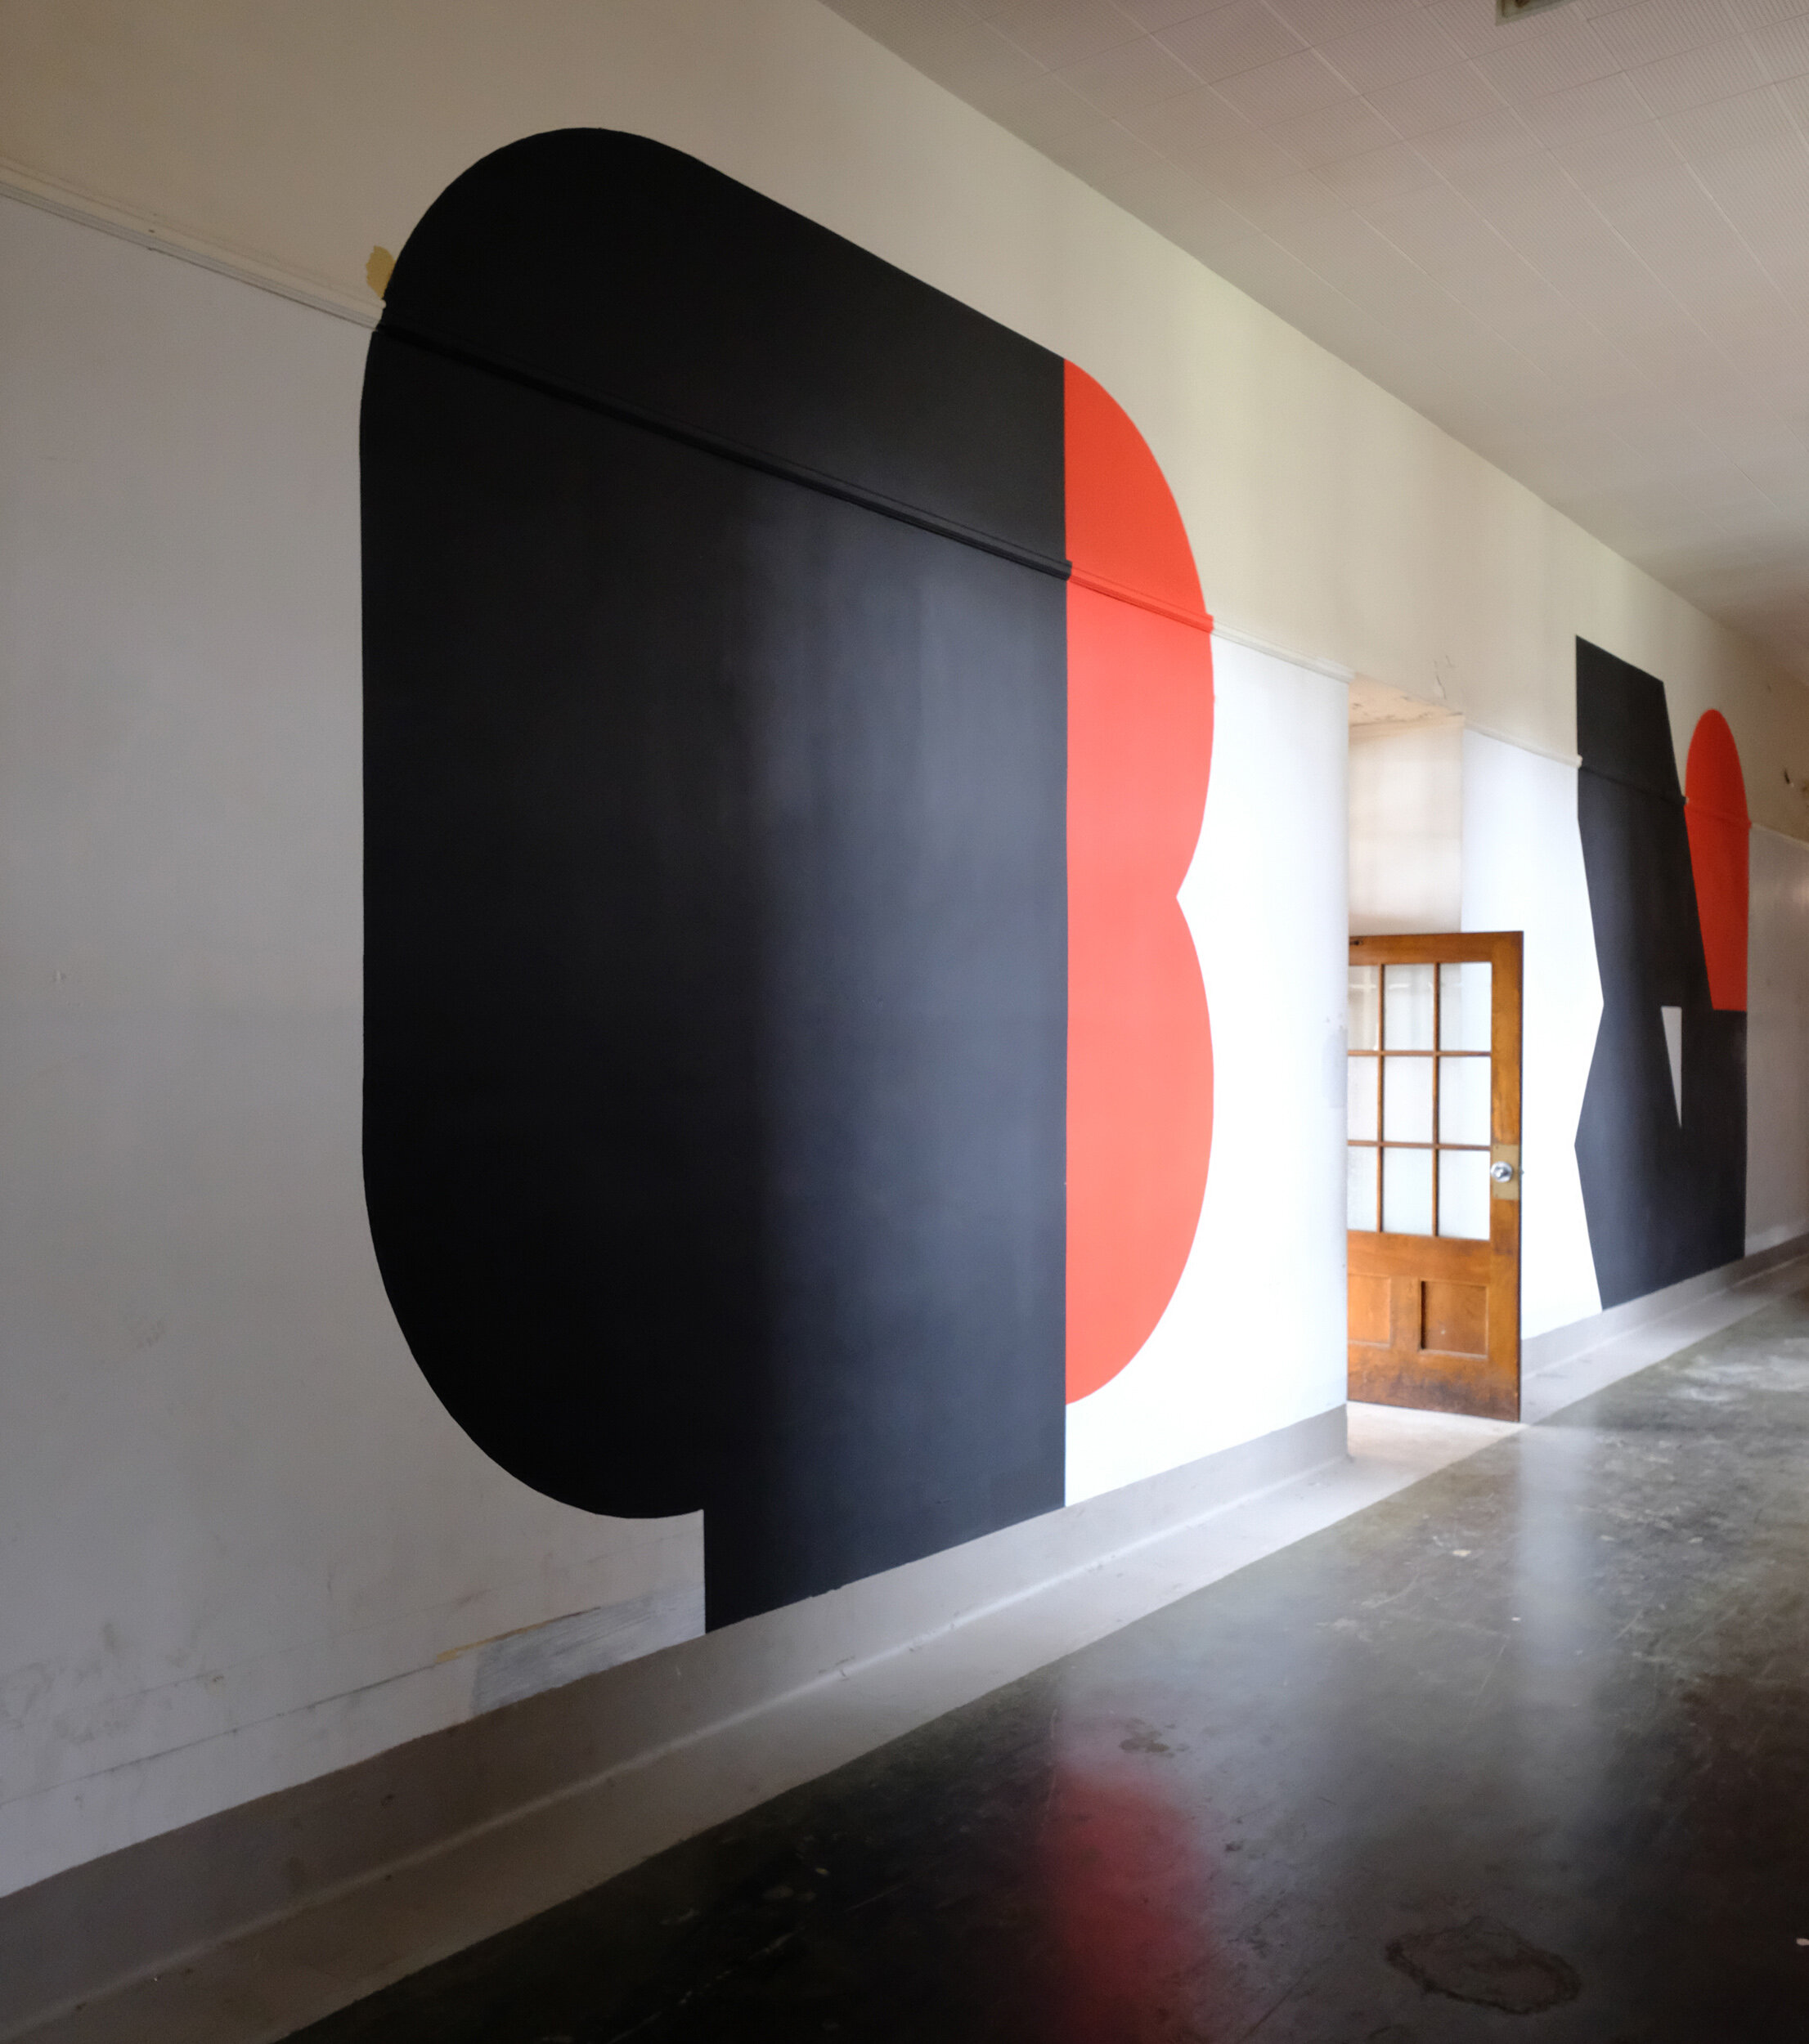 montague-paintings-wall-3_0001_Layer 2.jpg